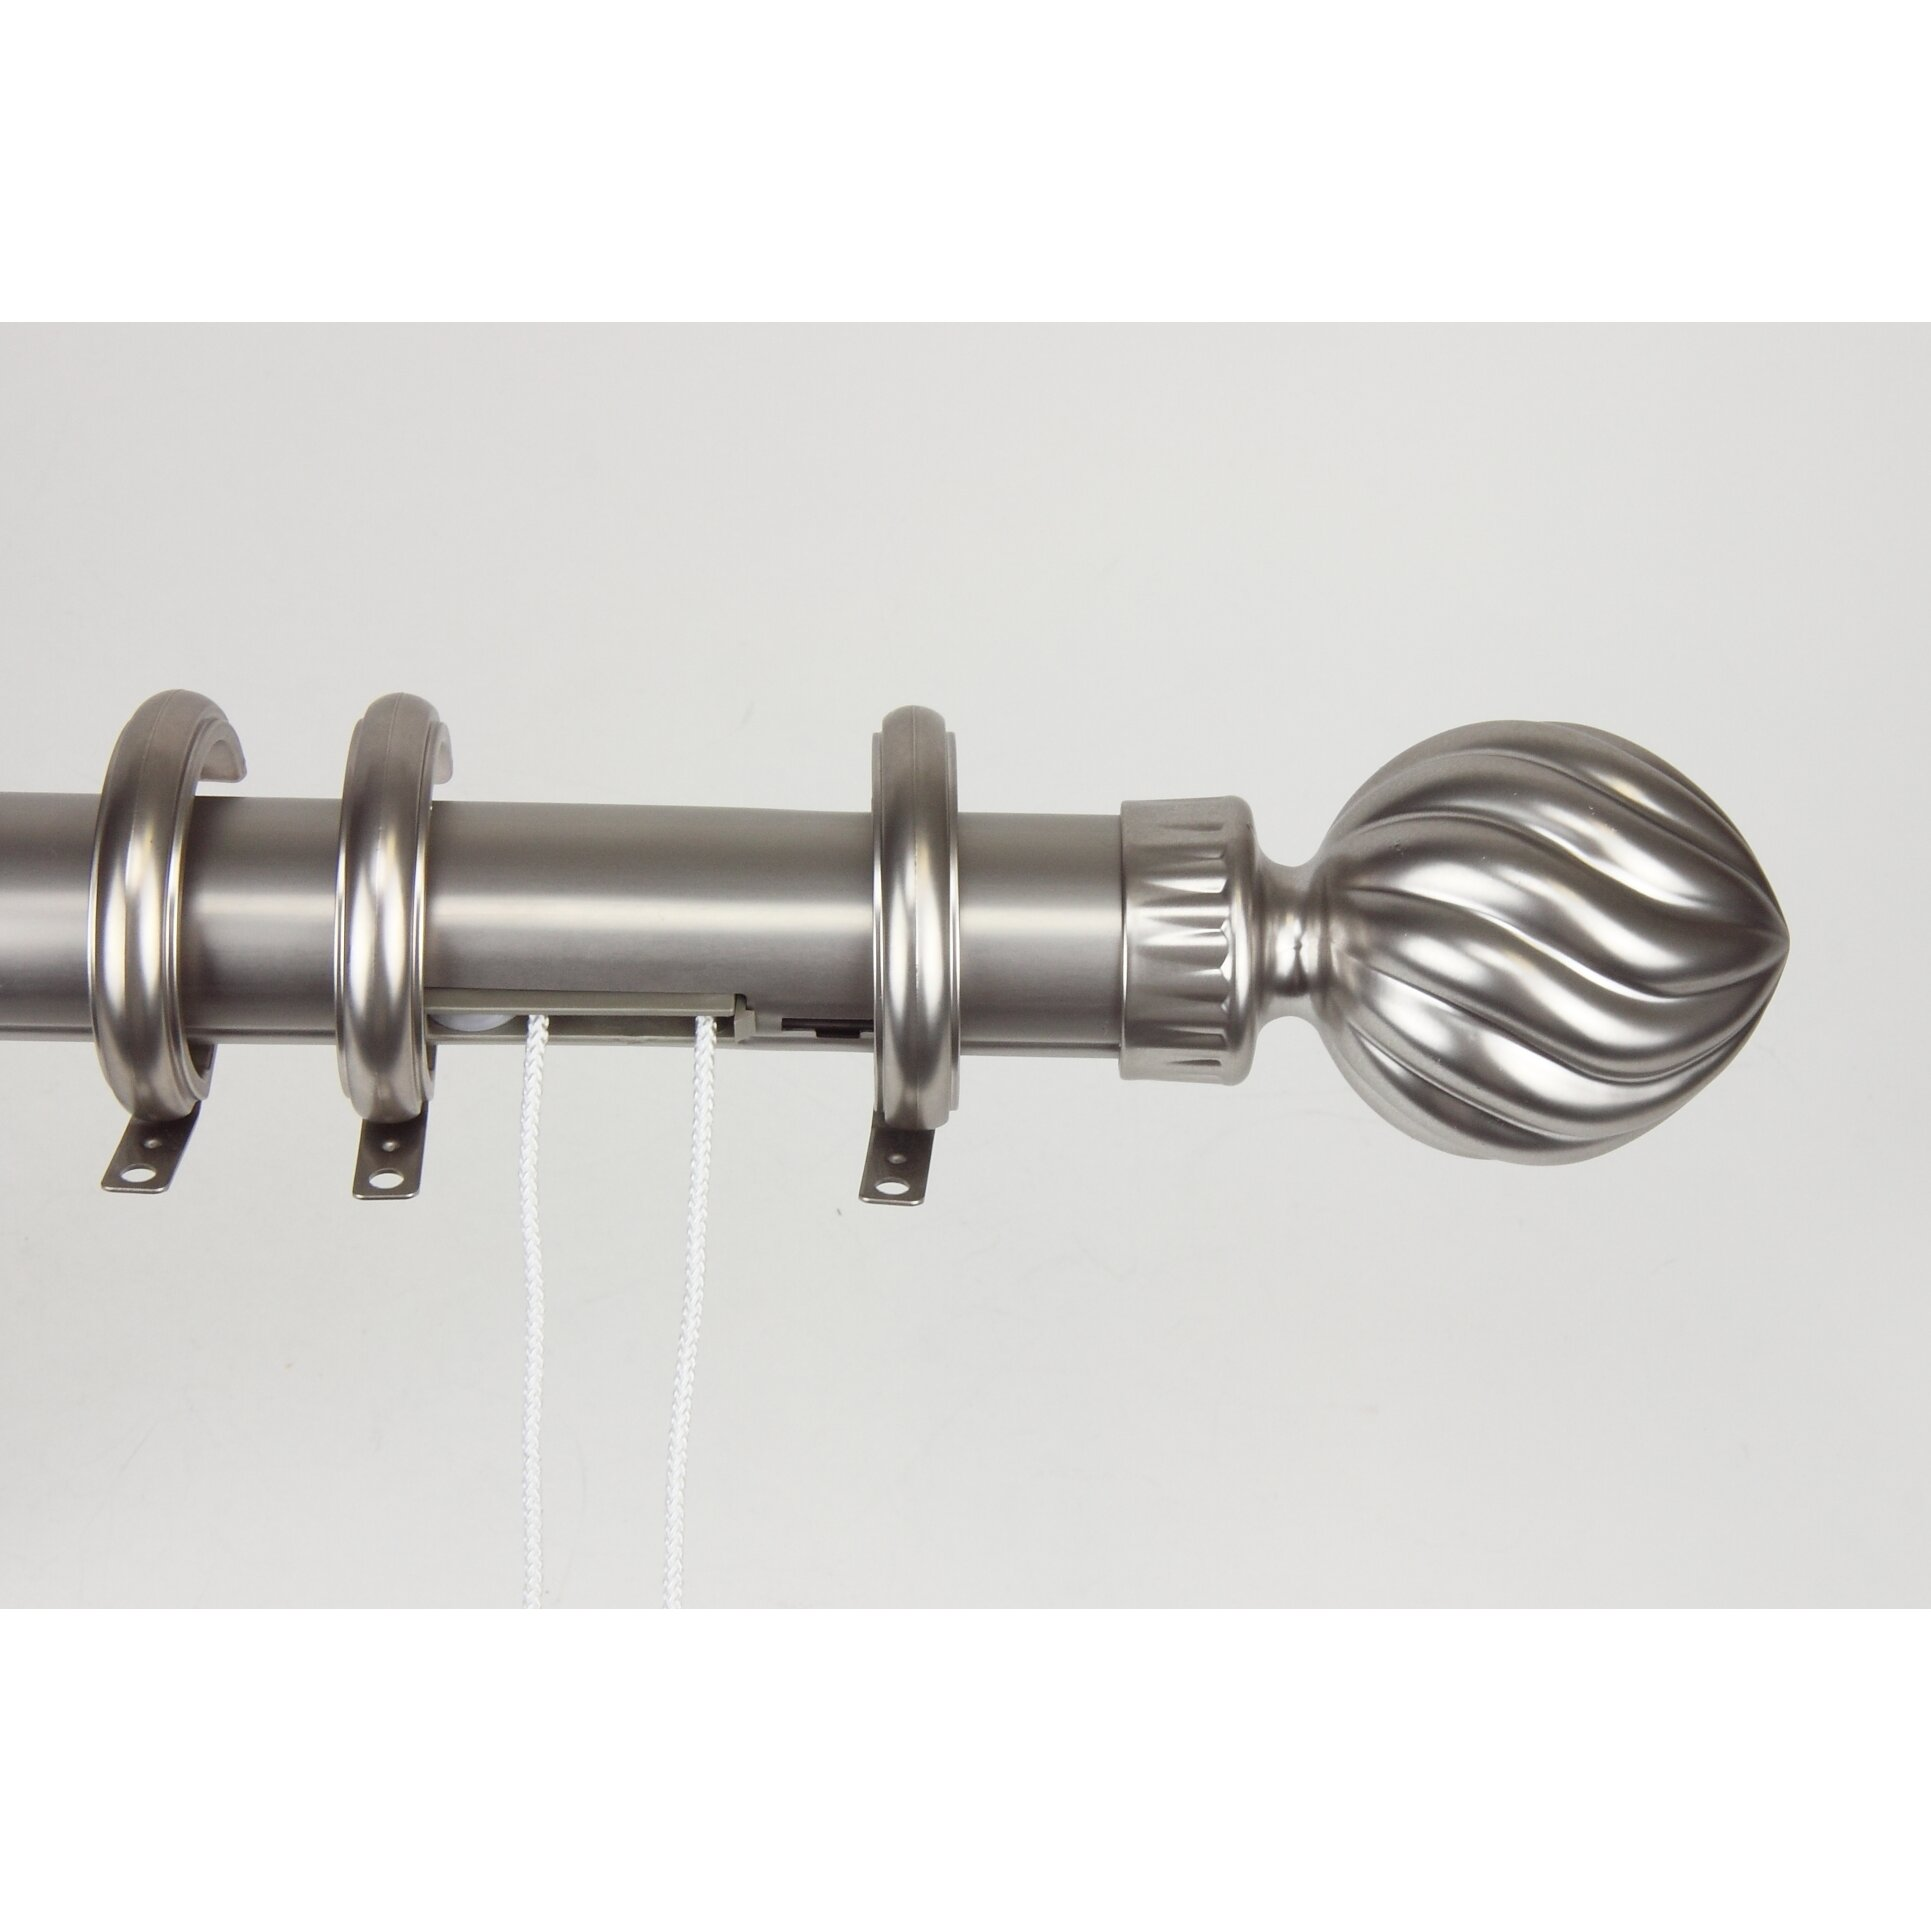 traverse fluted ball center open curtain rod and hardware set by rod